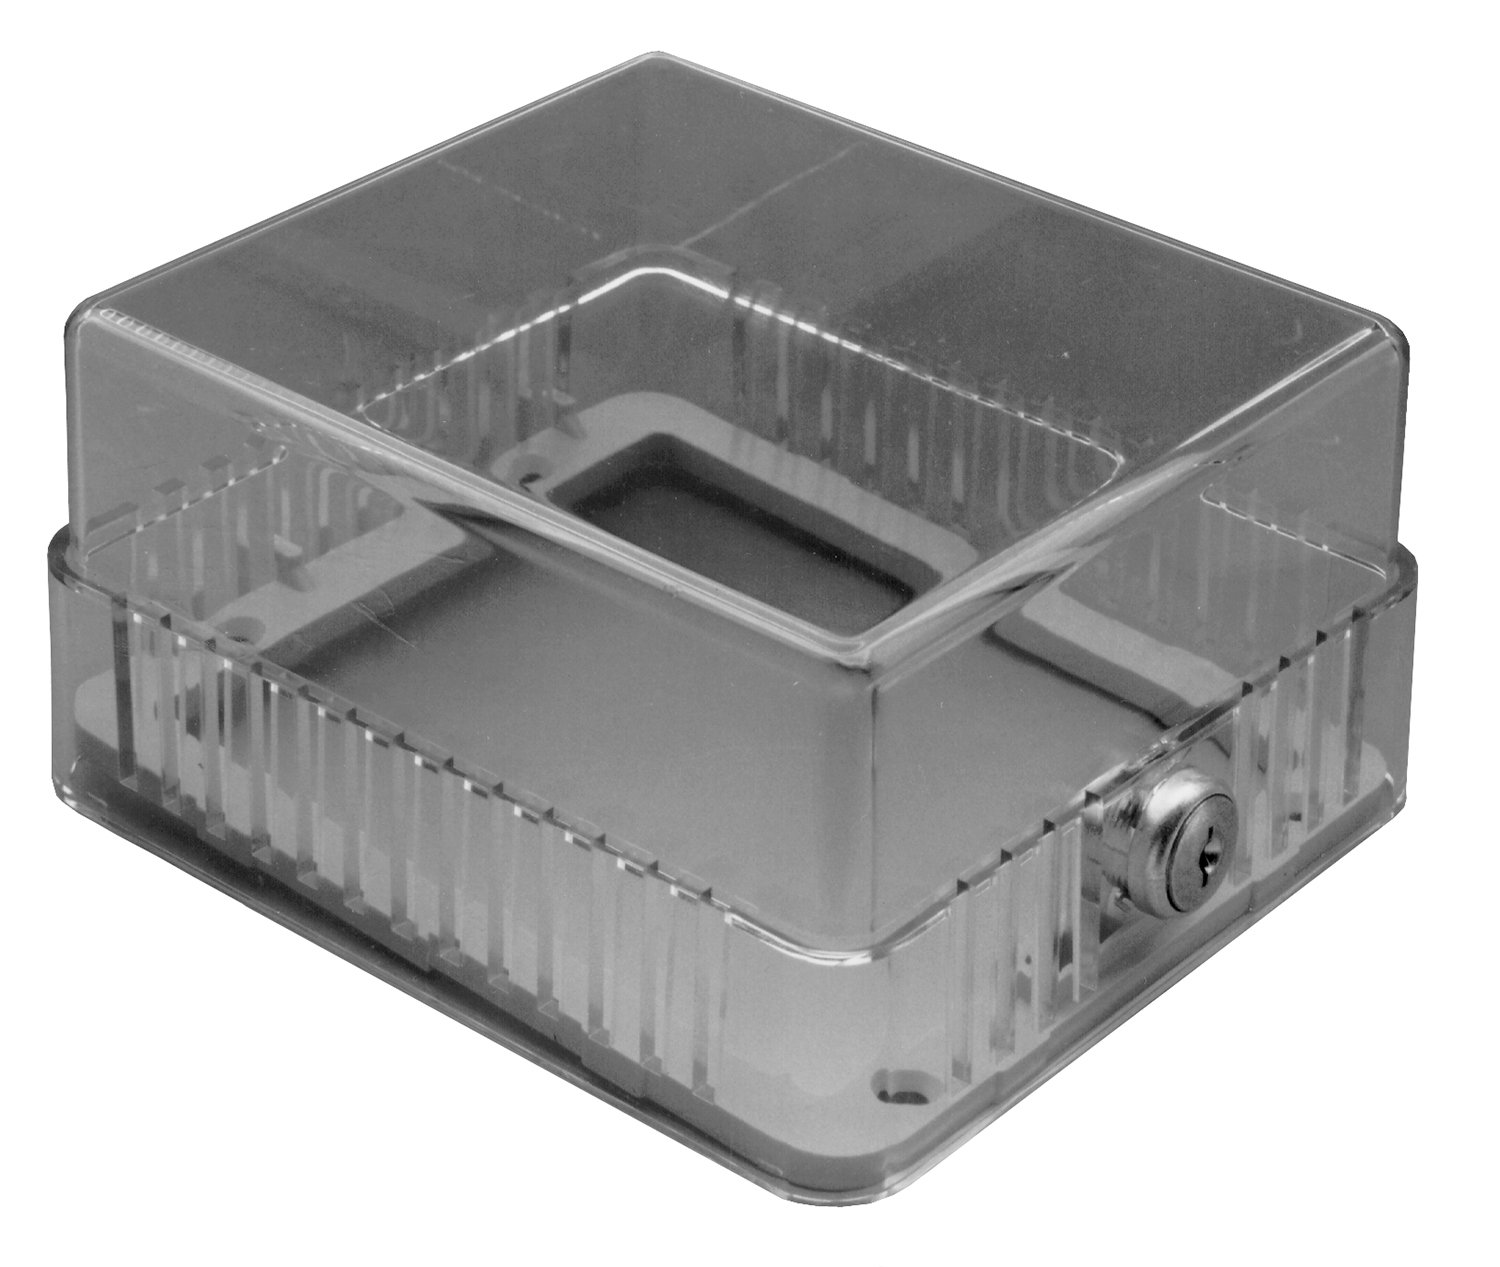 TPI Corporation TG2 Clear Plastic Thermostat Guard, 5.25''W x 5.25''H x 3.25'' Deep, Tumbler Lock, works with any Compatible Thermostat by TPI (Image #1)